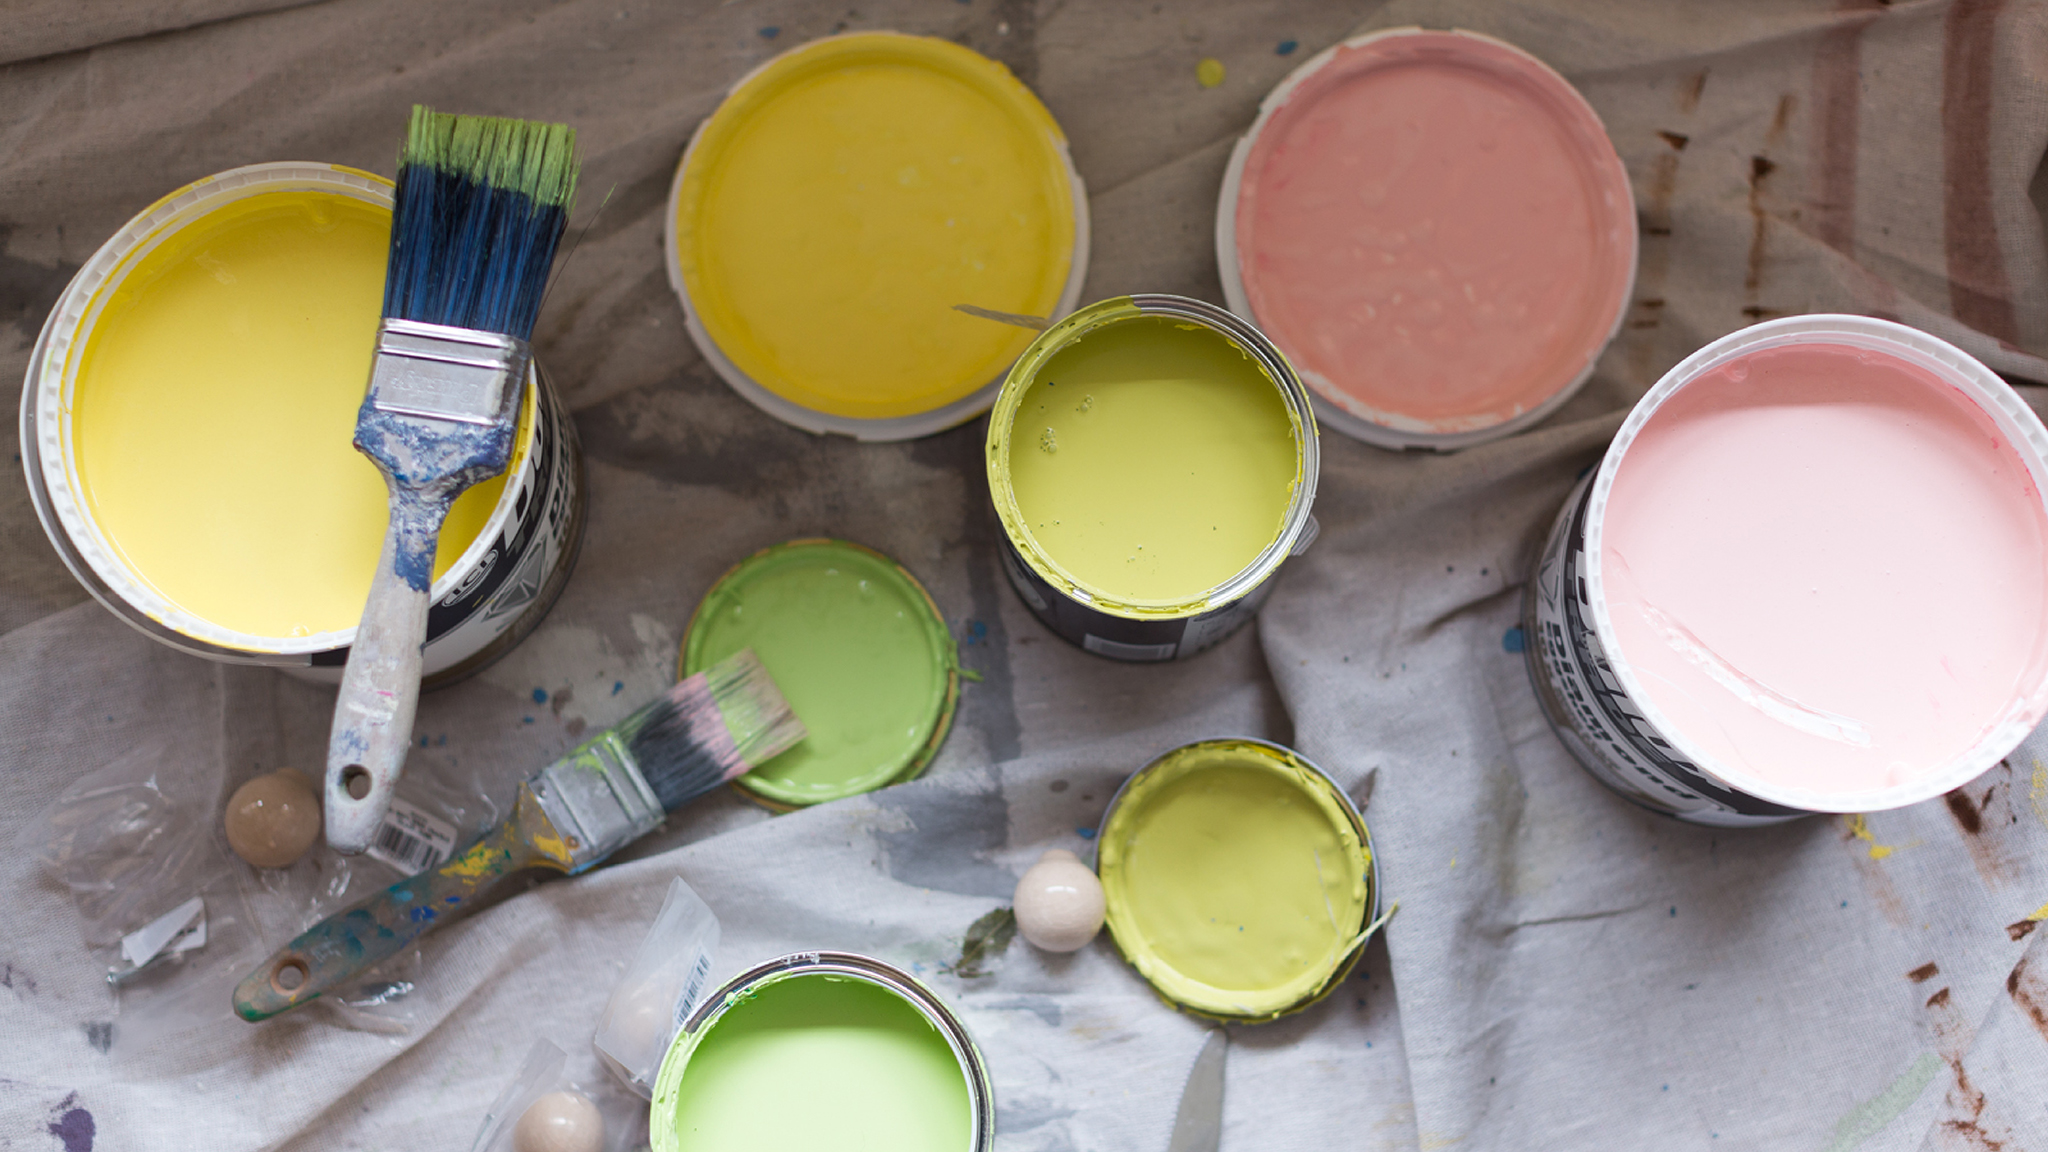 Donate your leftover paint to help brighten local communities.